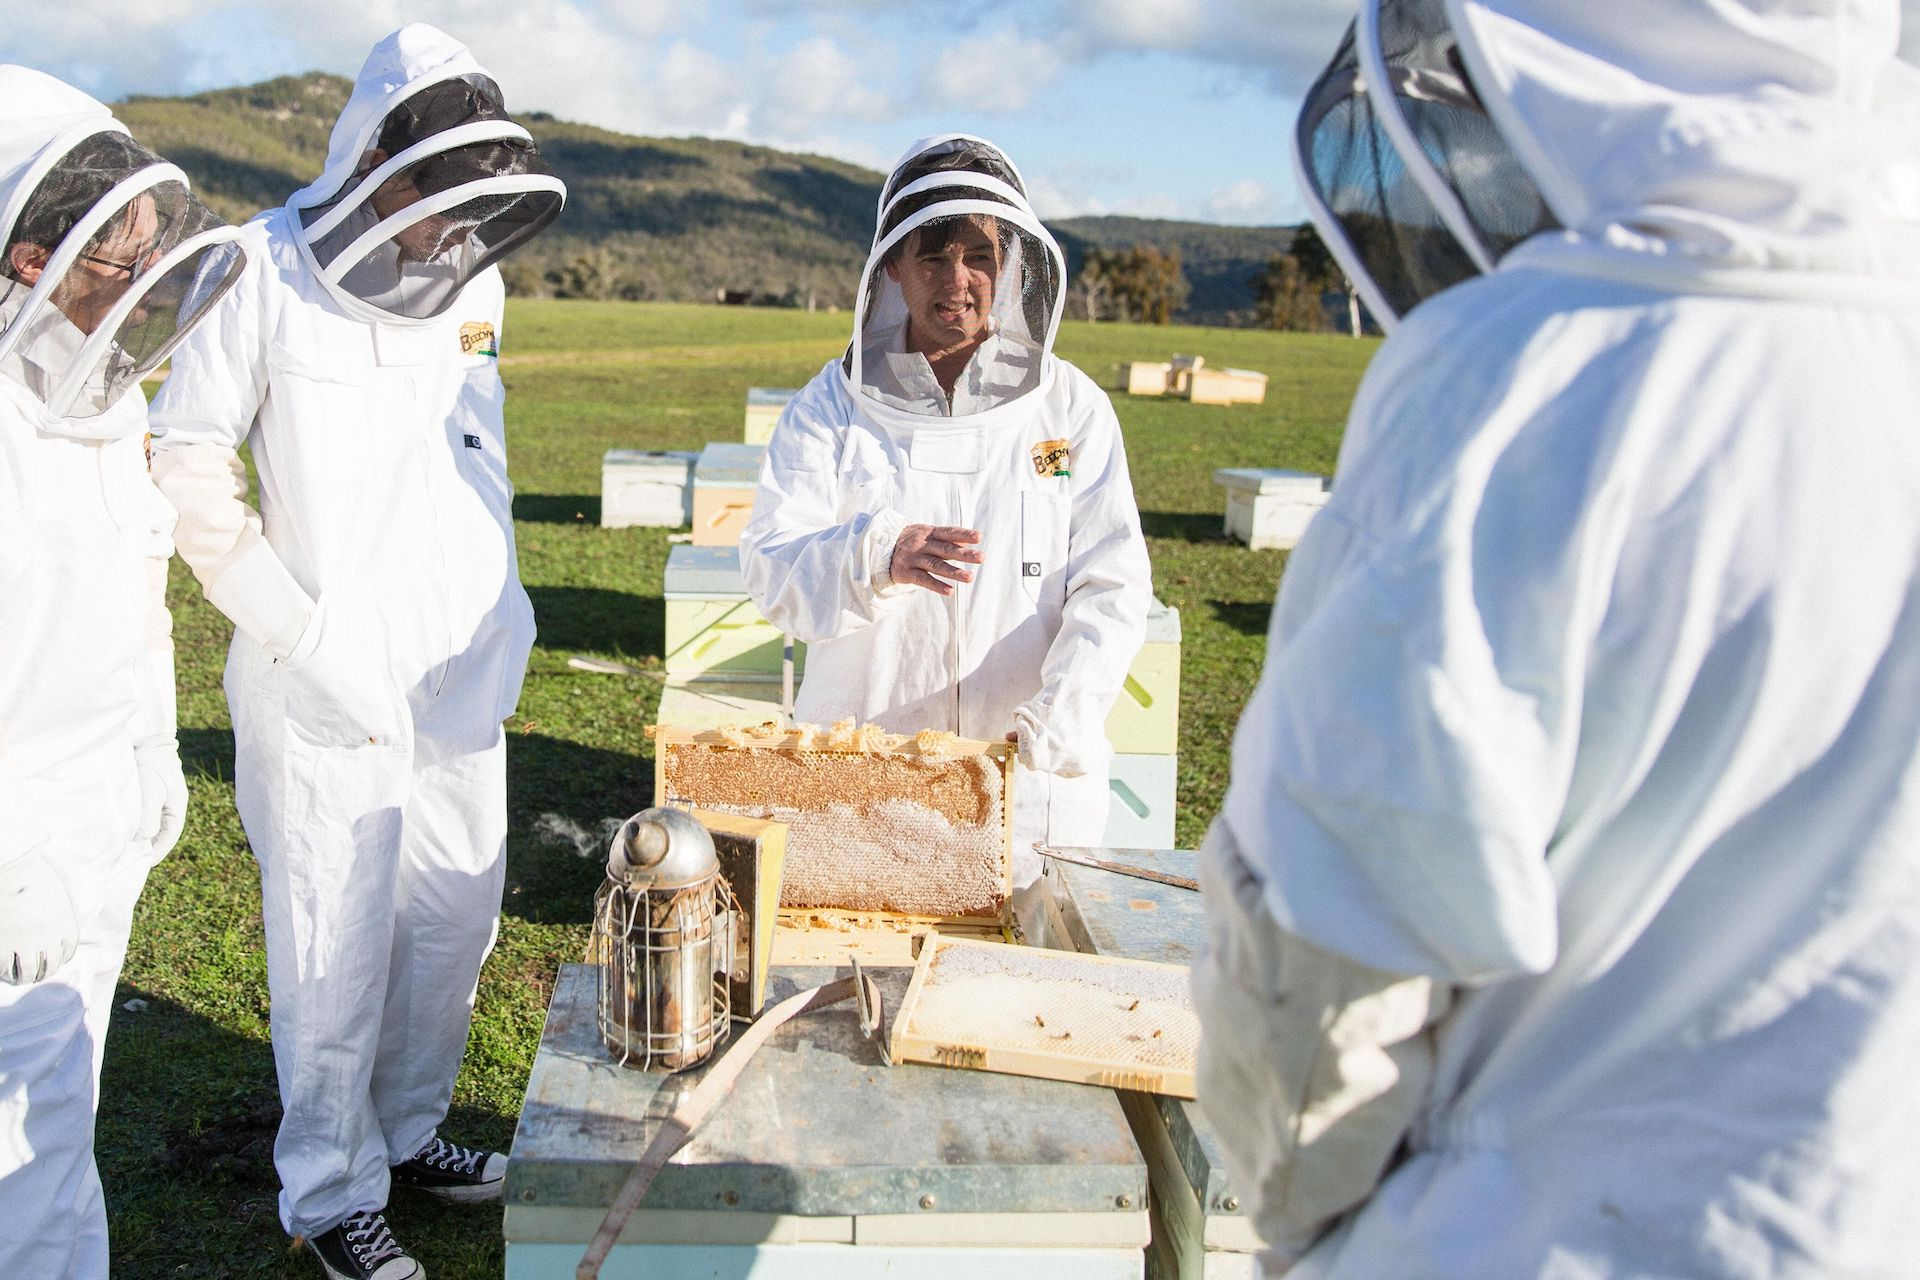 Worrying buzz on the vanishing of honeybees in a changing world